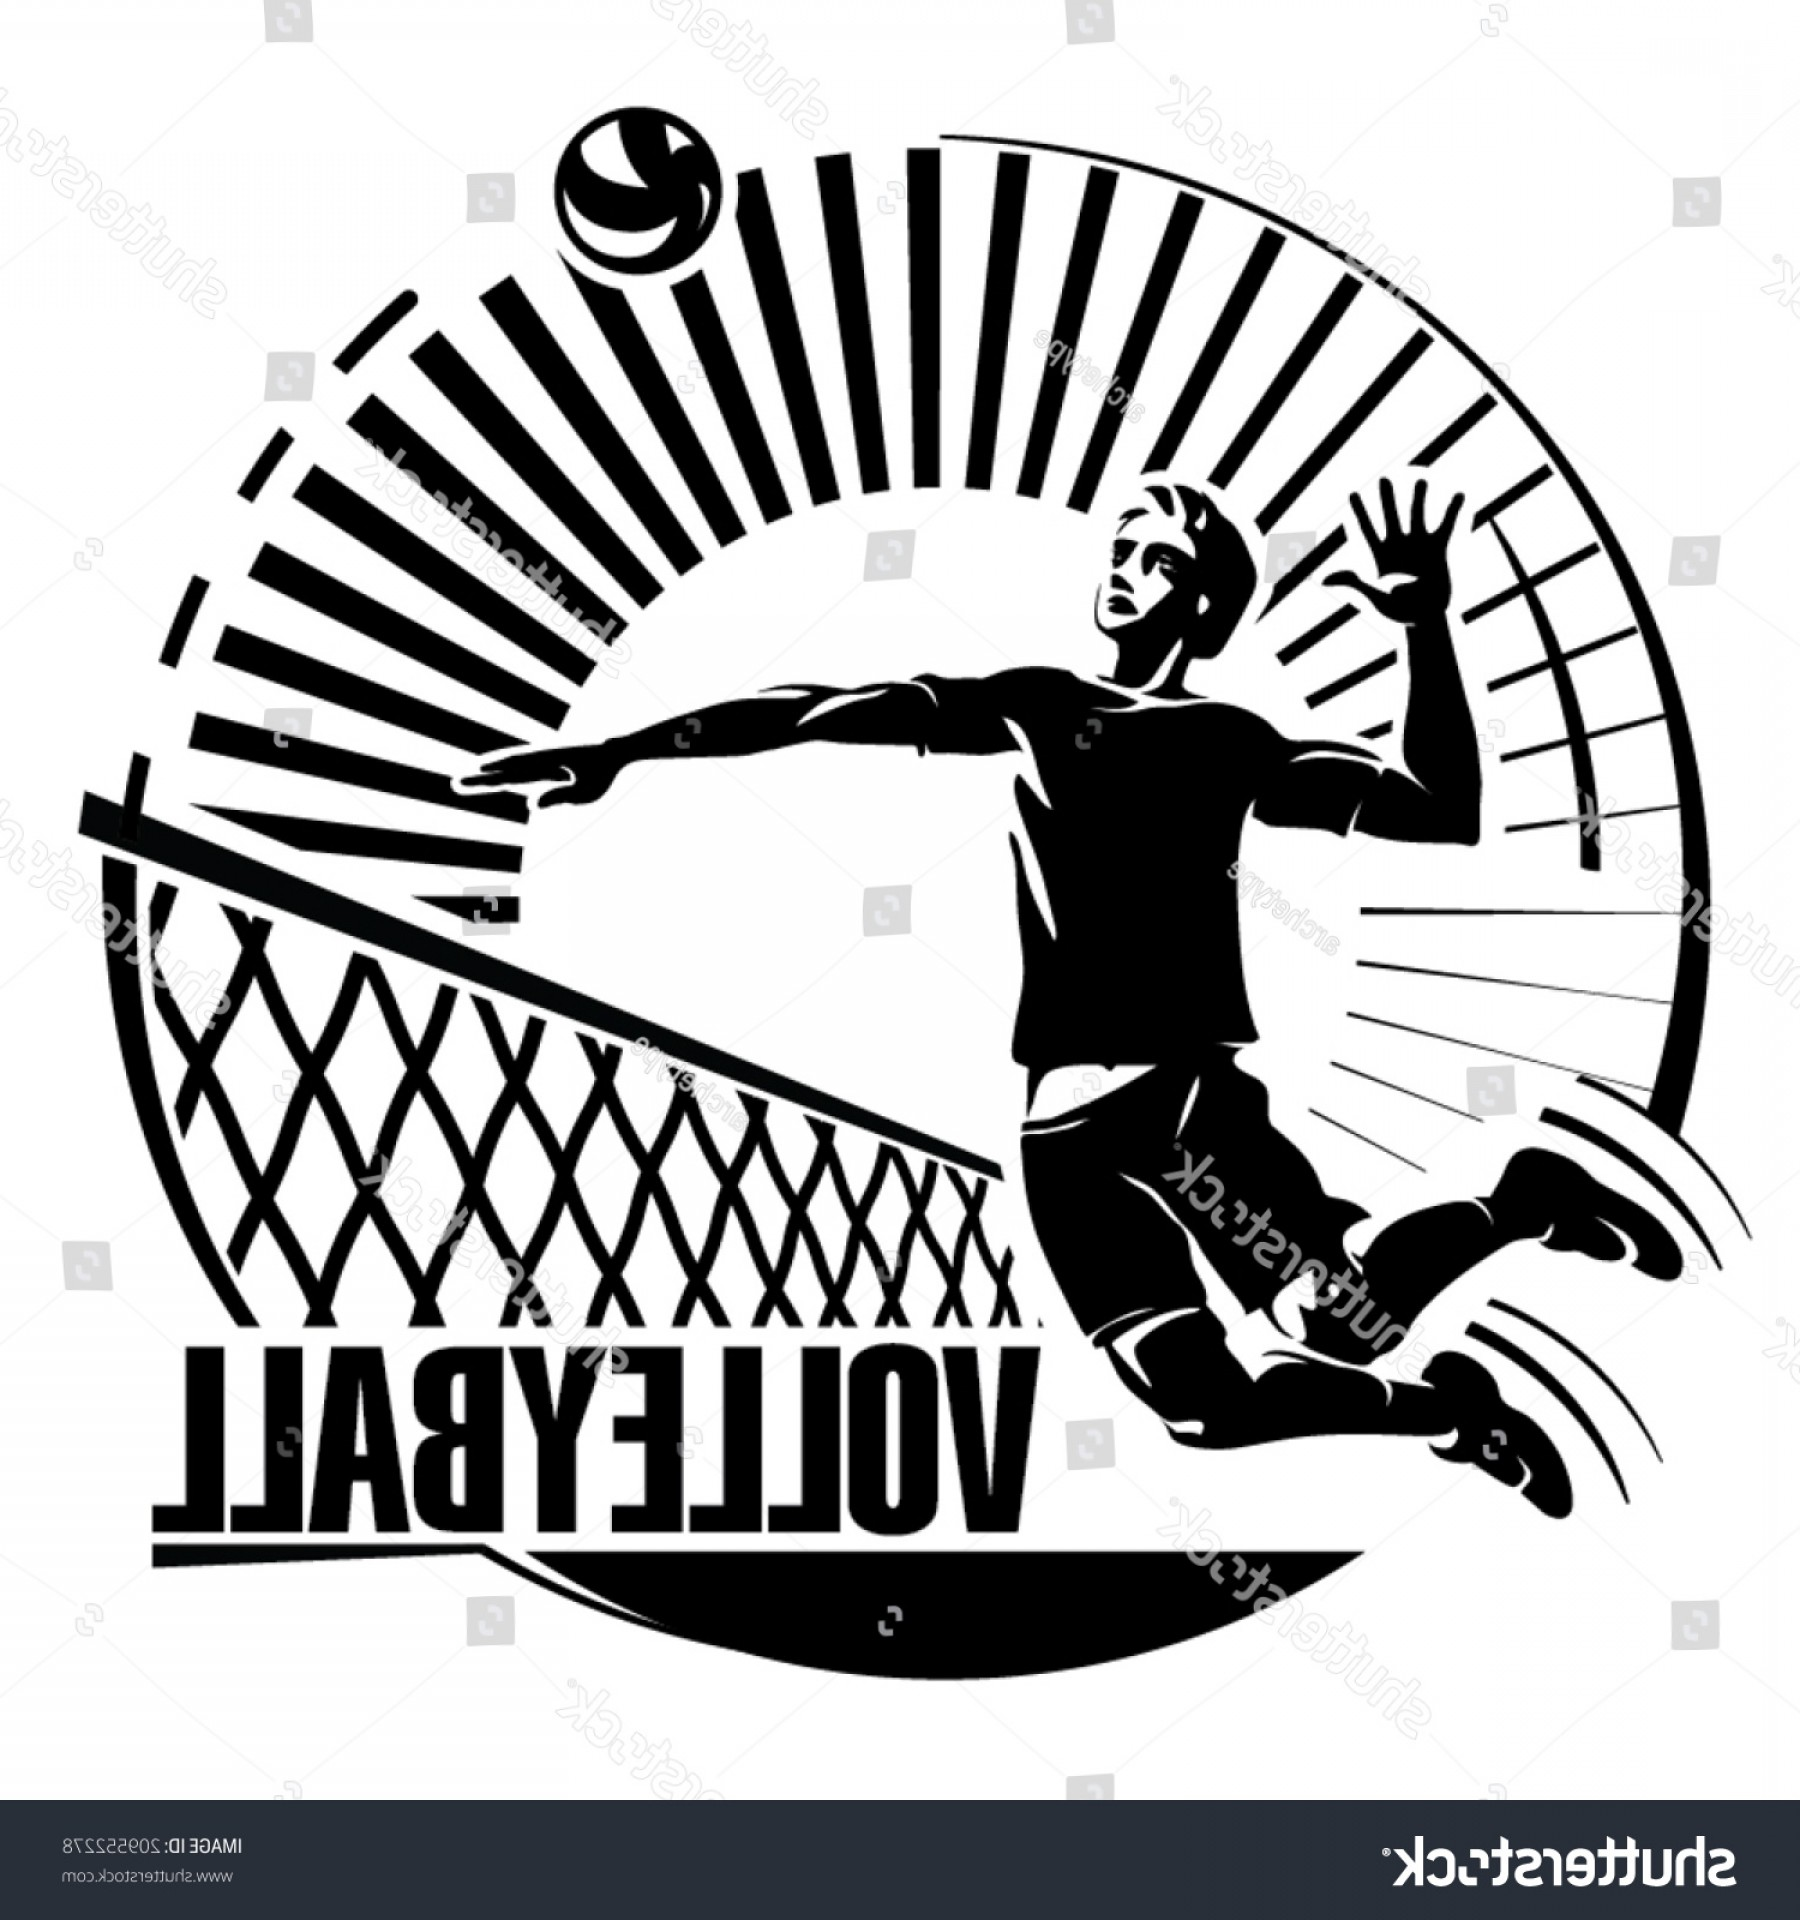 Volleyball Vector Logo: Volleyball Vector Illustration Engraving Style